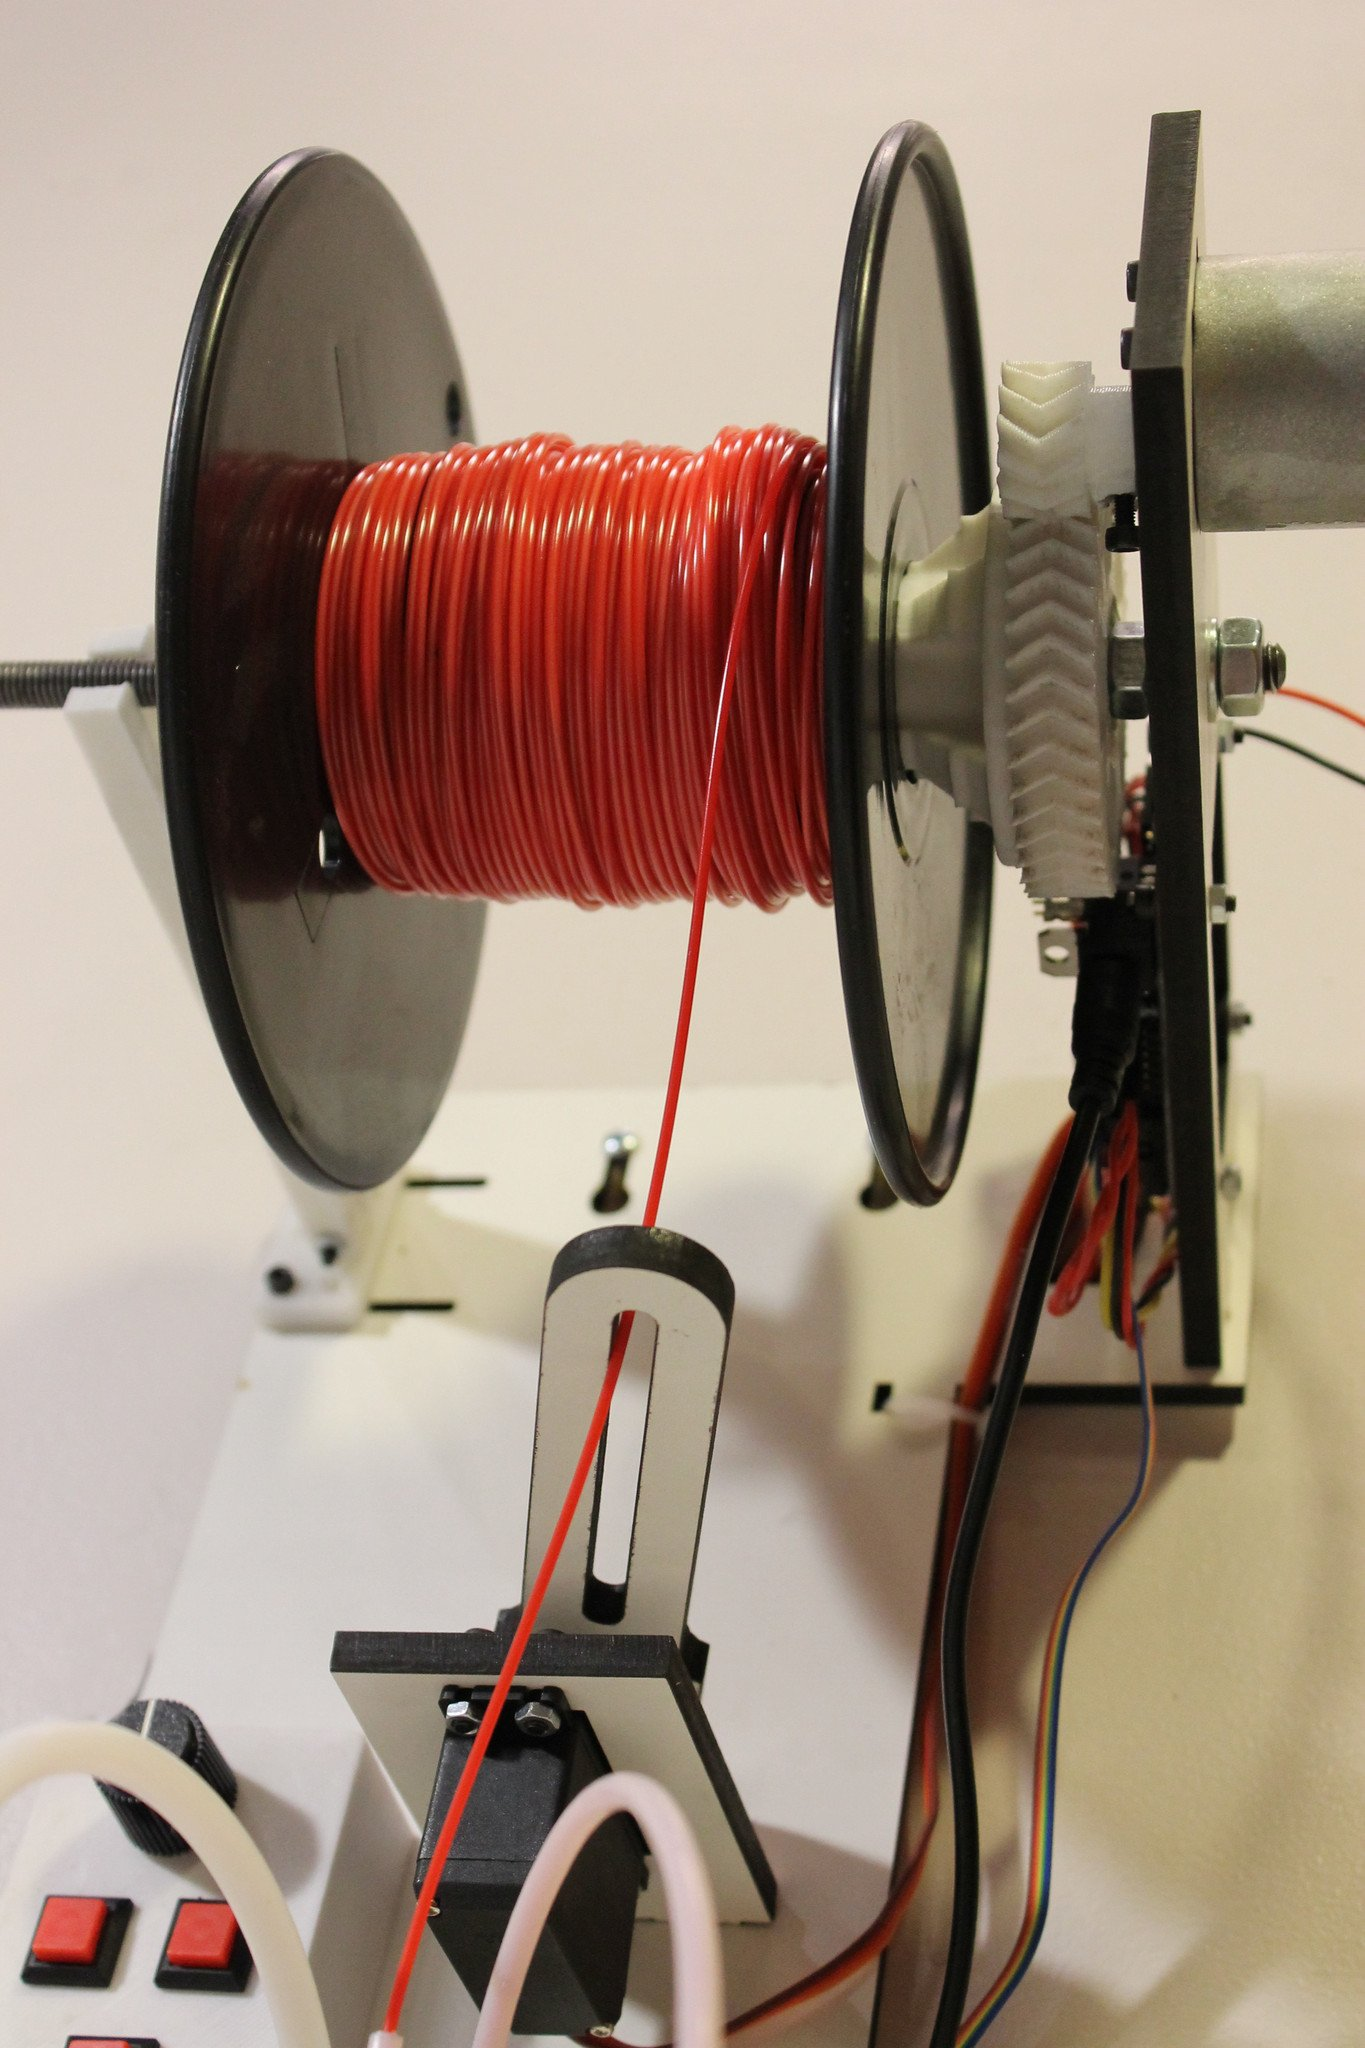 Guide detail in filawinder for winding 3D printer filament